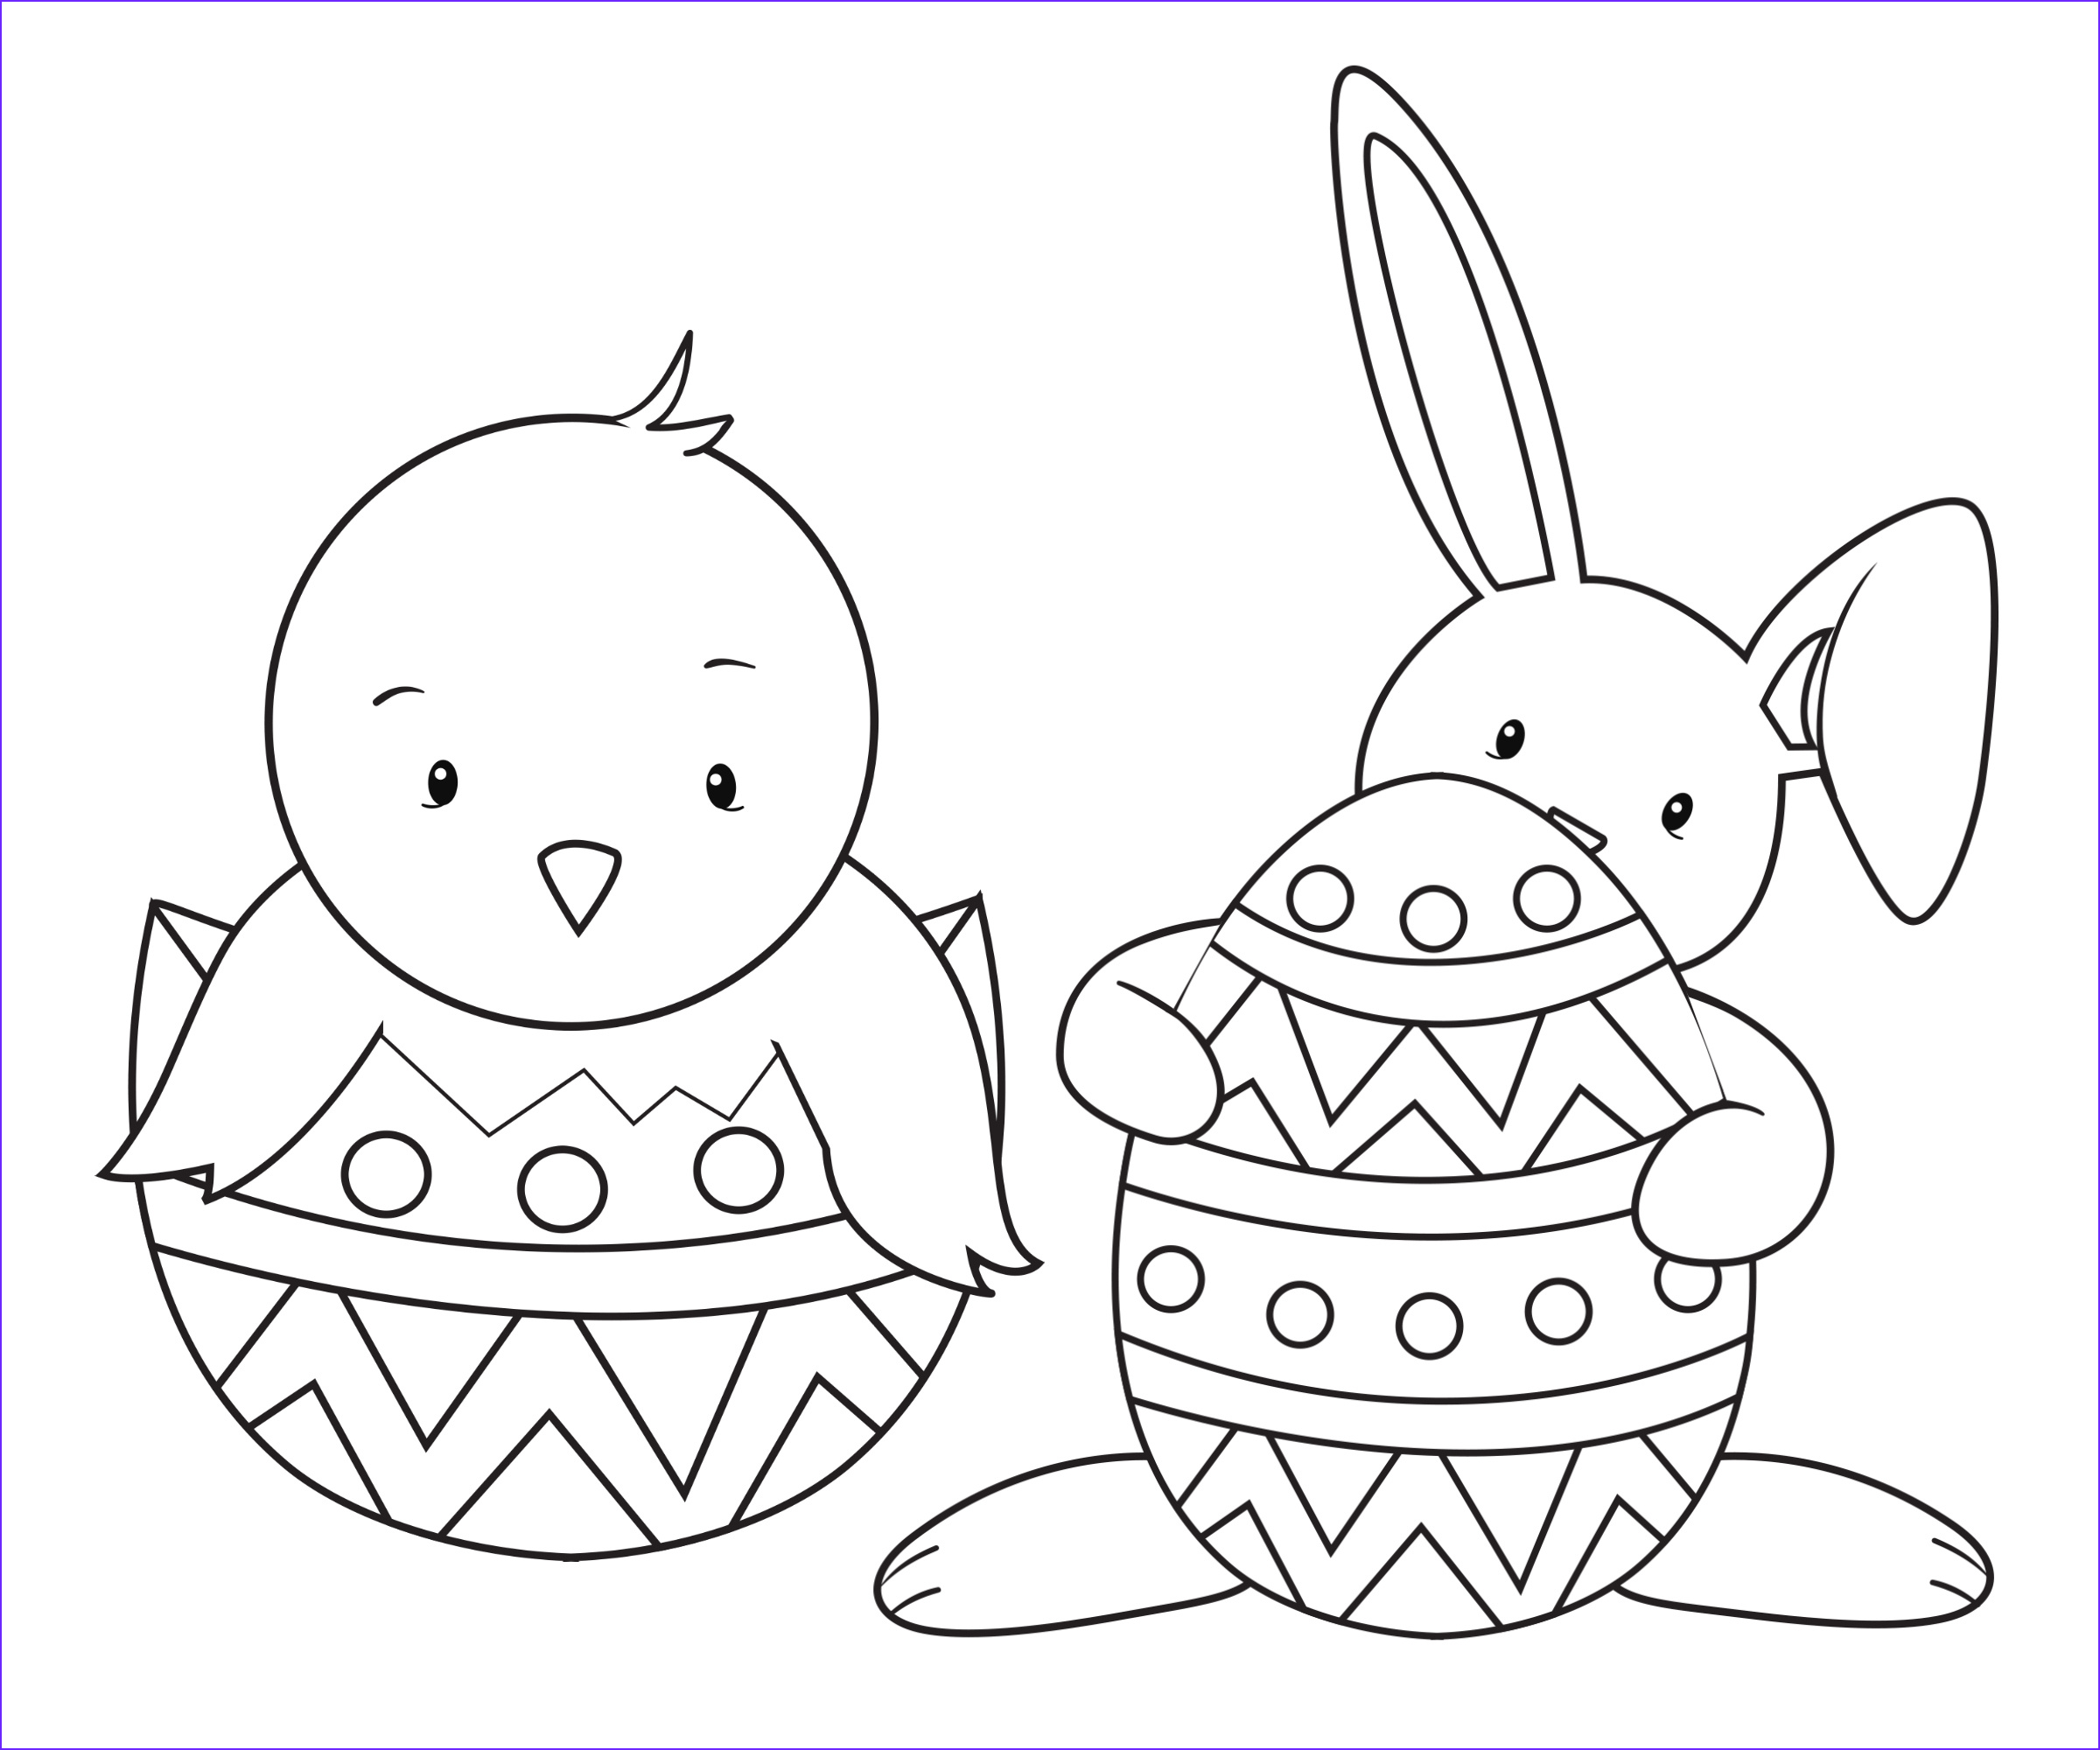 Easter Coloring Book Cool Collection Easter Coloring Pages for Kids Crazy Little Projects